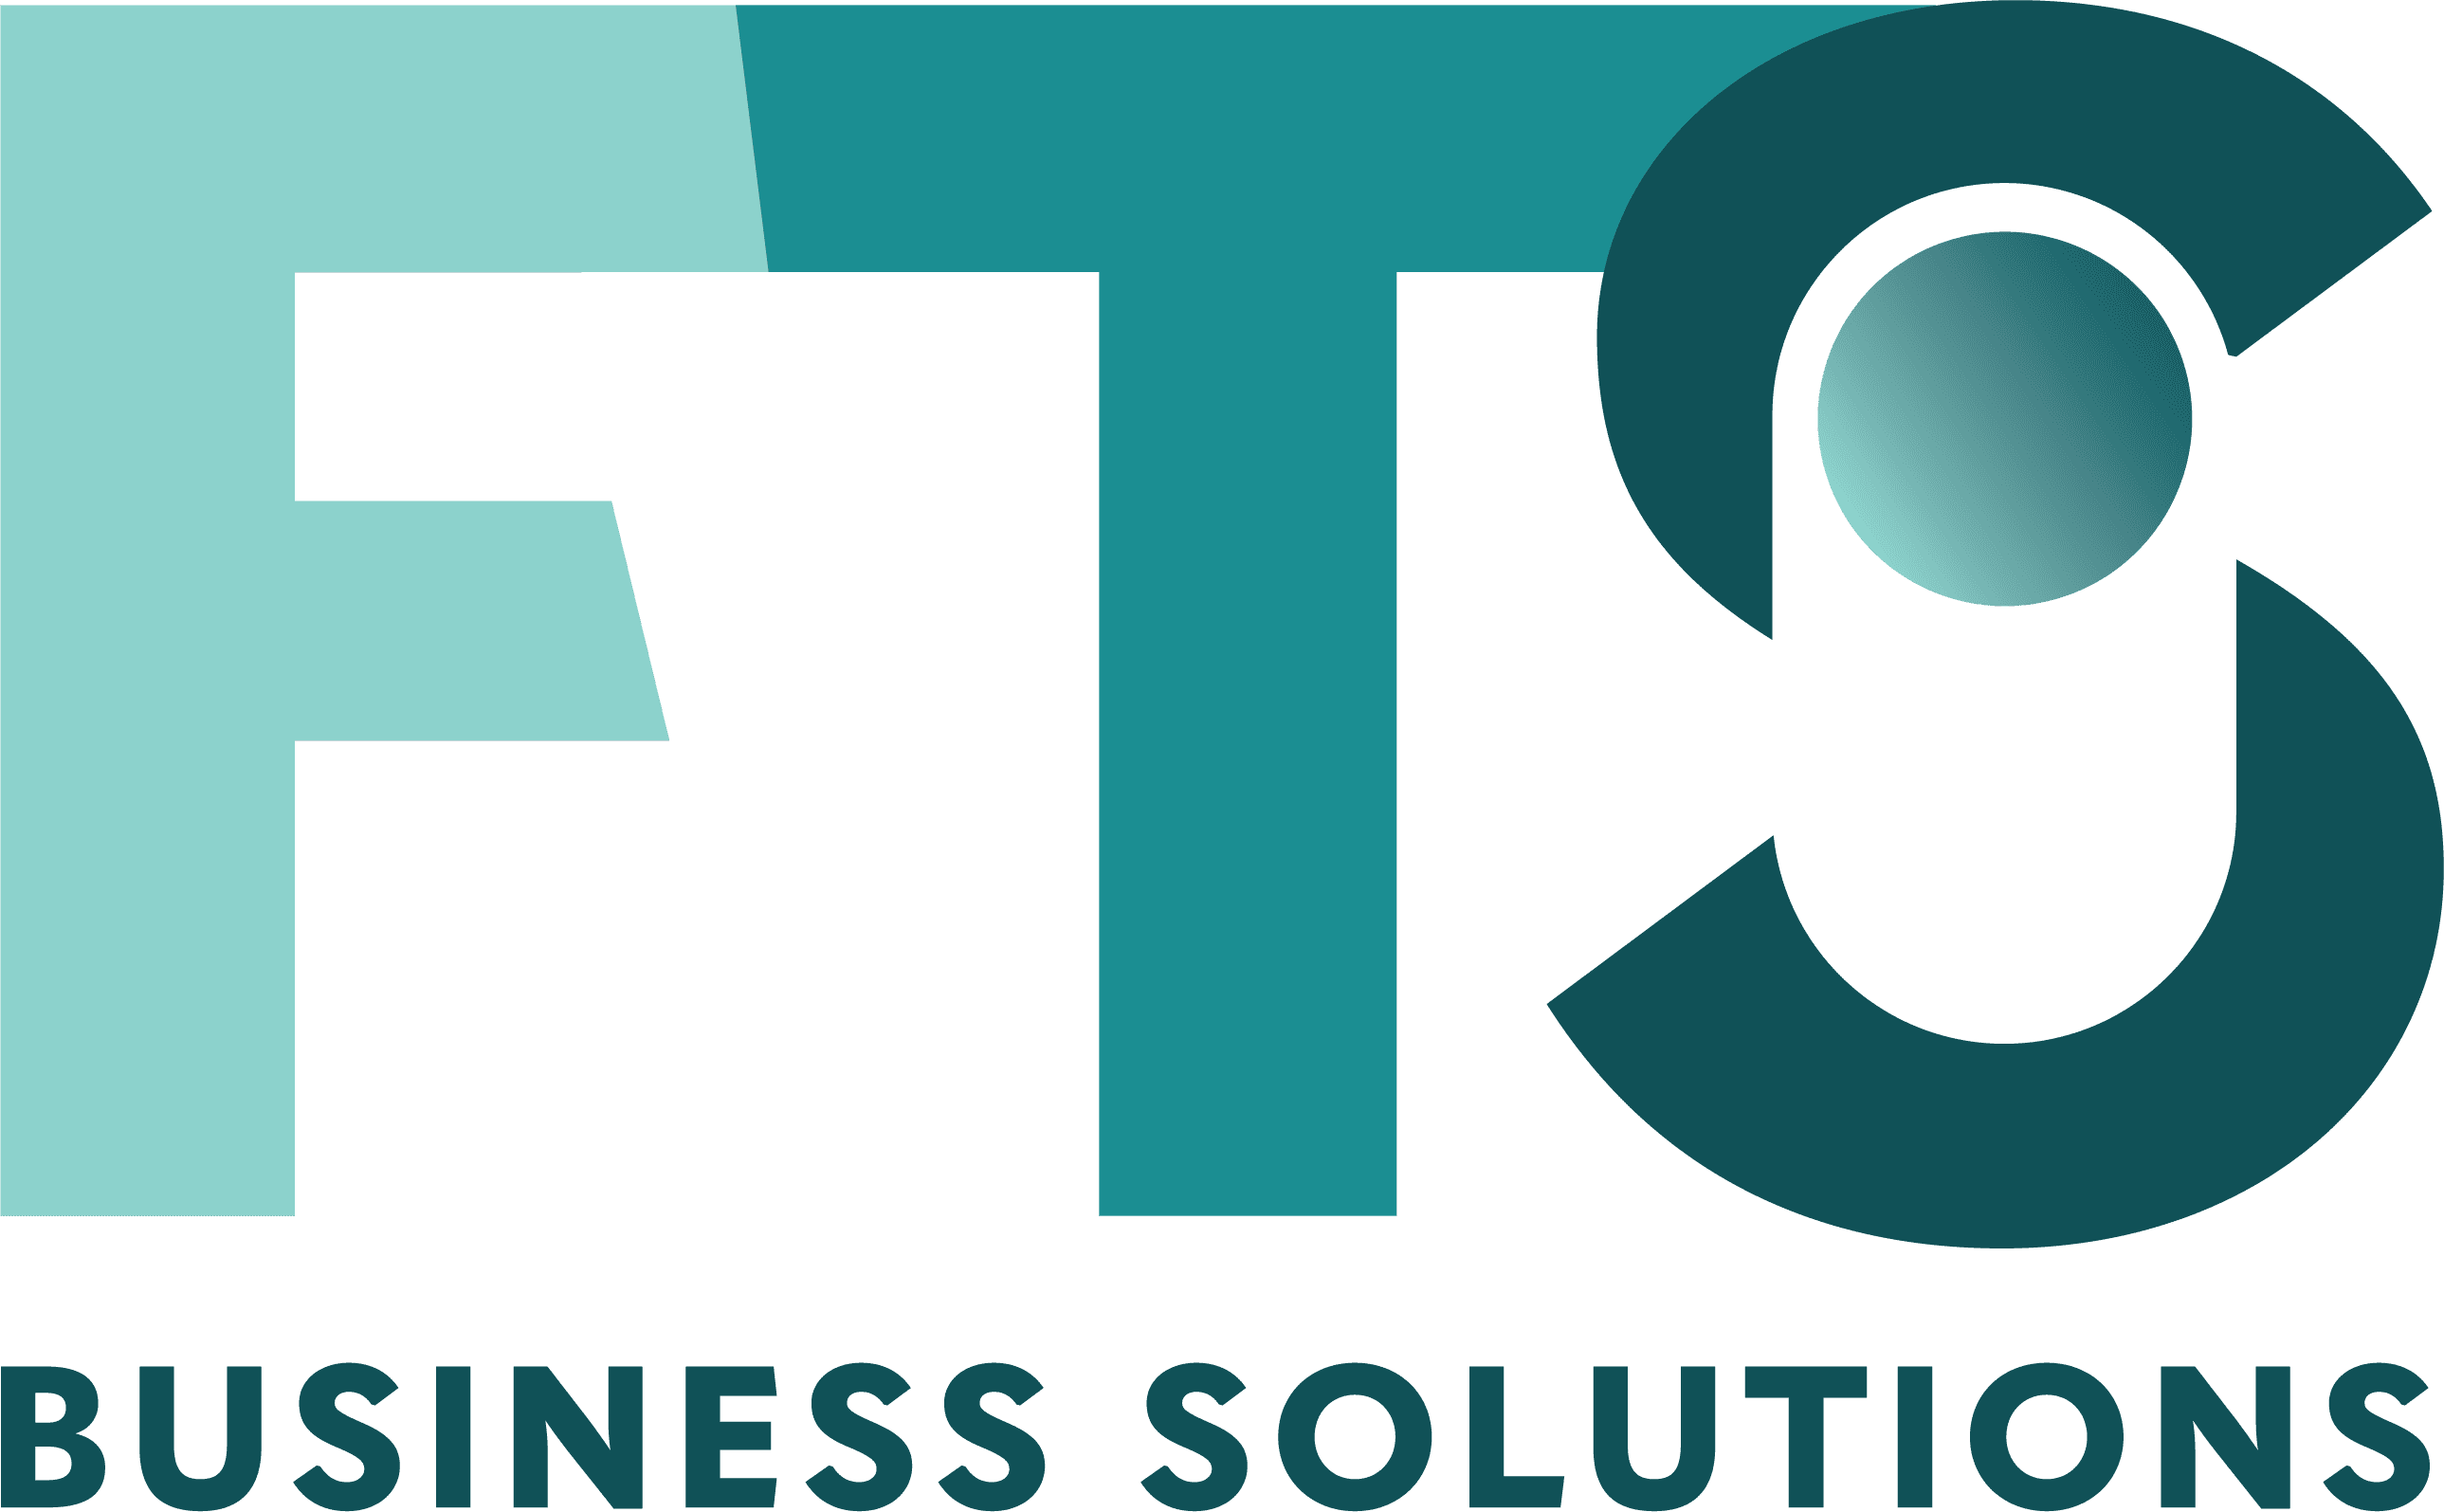 FTS Business Solutions